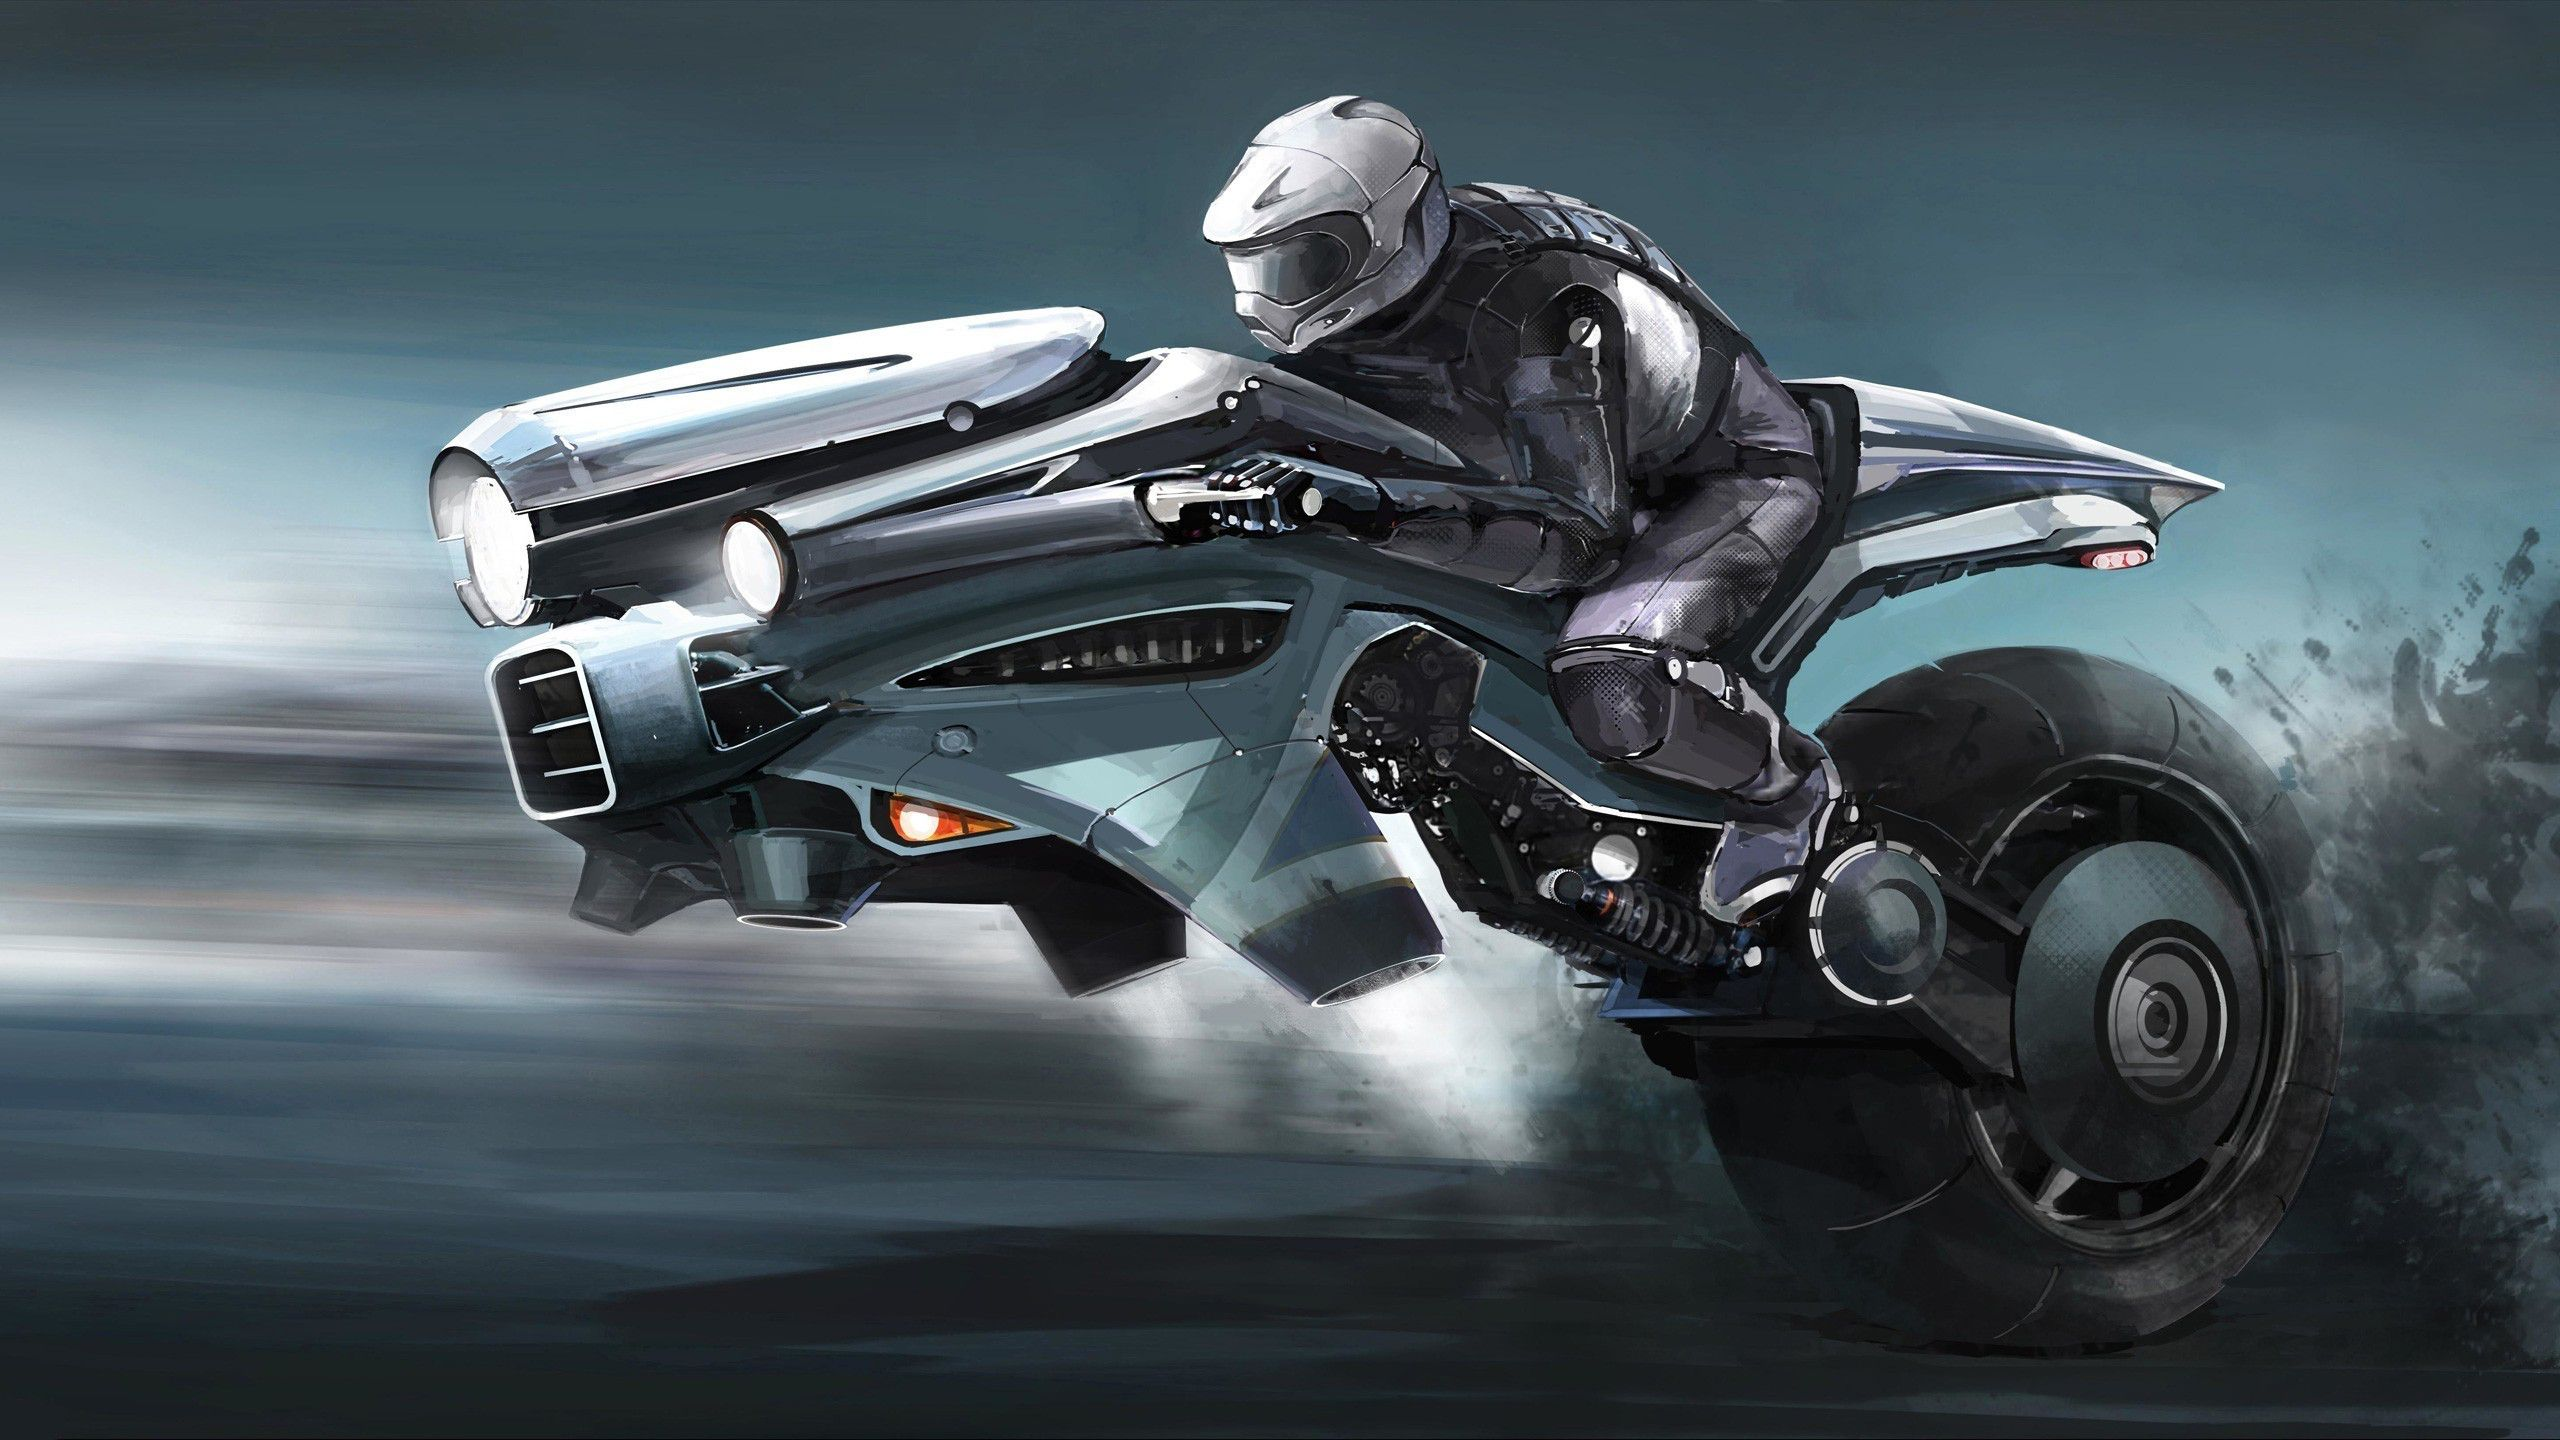 2560x1440 motorcycle Full HD Wallpaper and Background Image | 2560x1440 | ID .